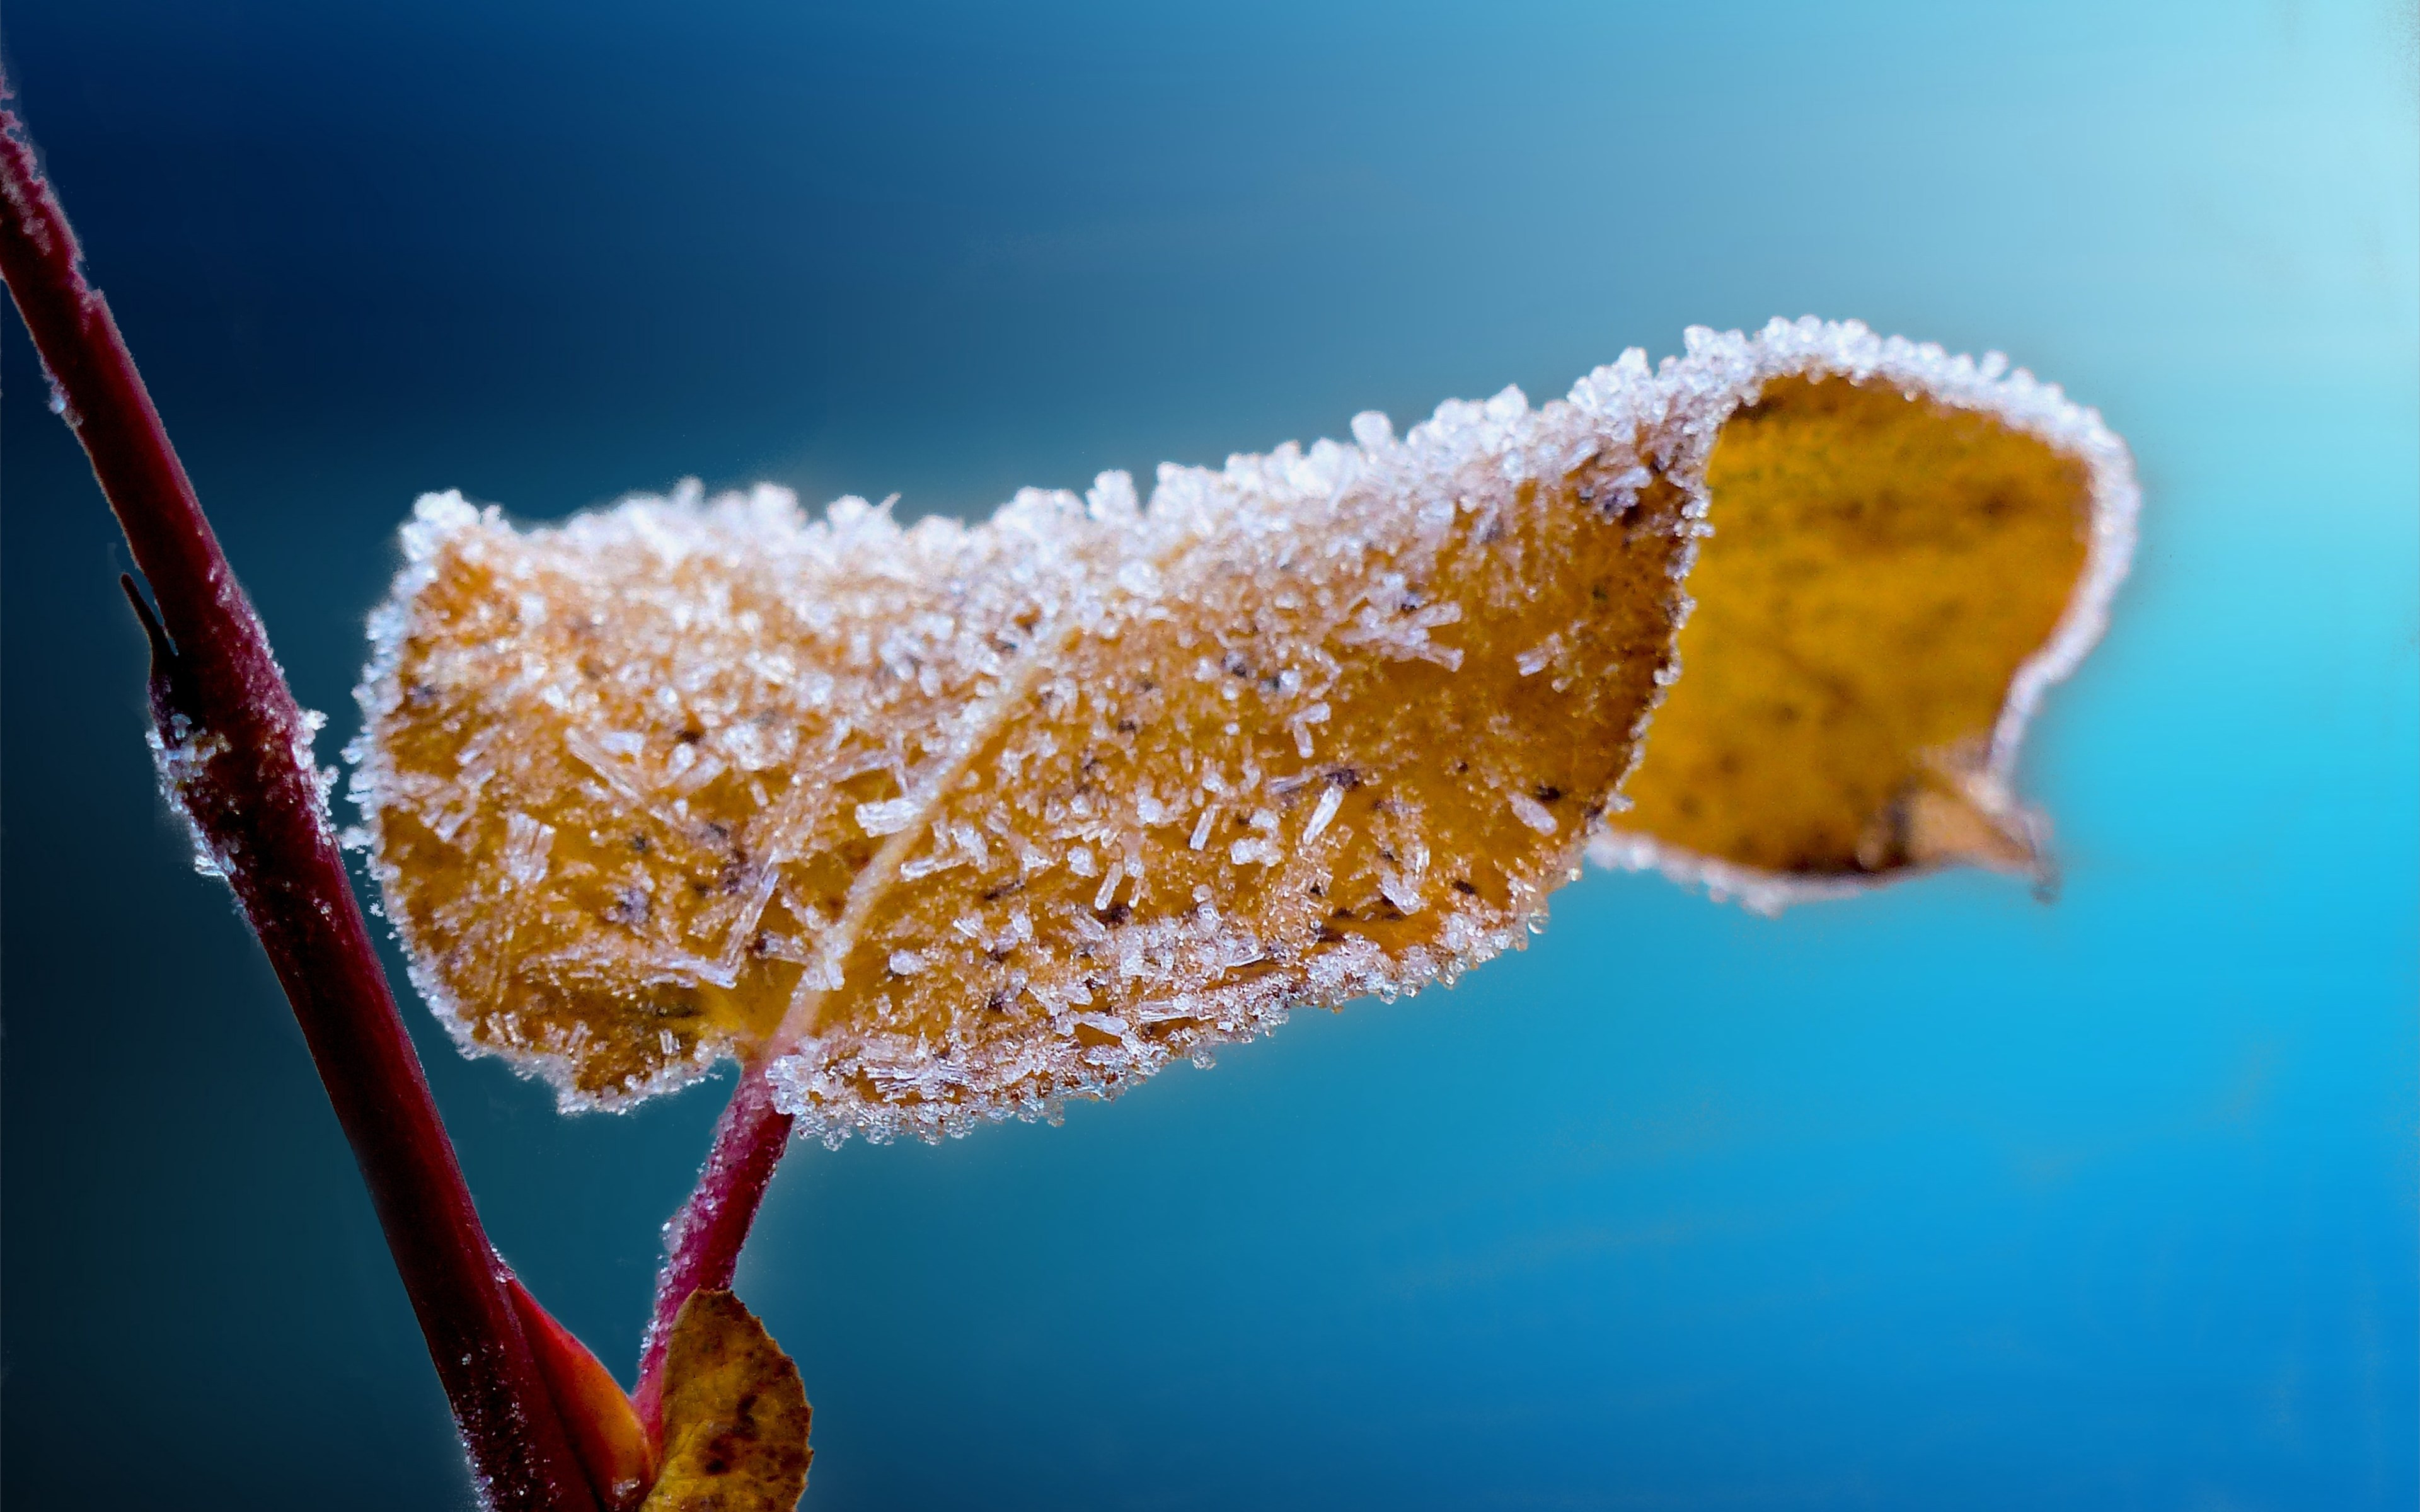 Frosted leaf | 3840x2400 wallpaper